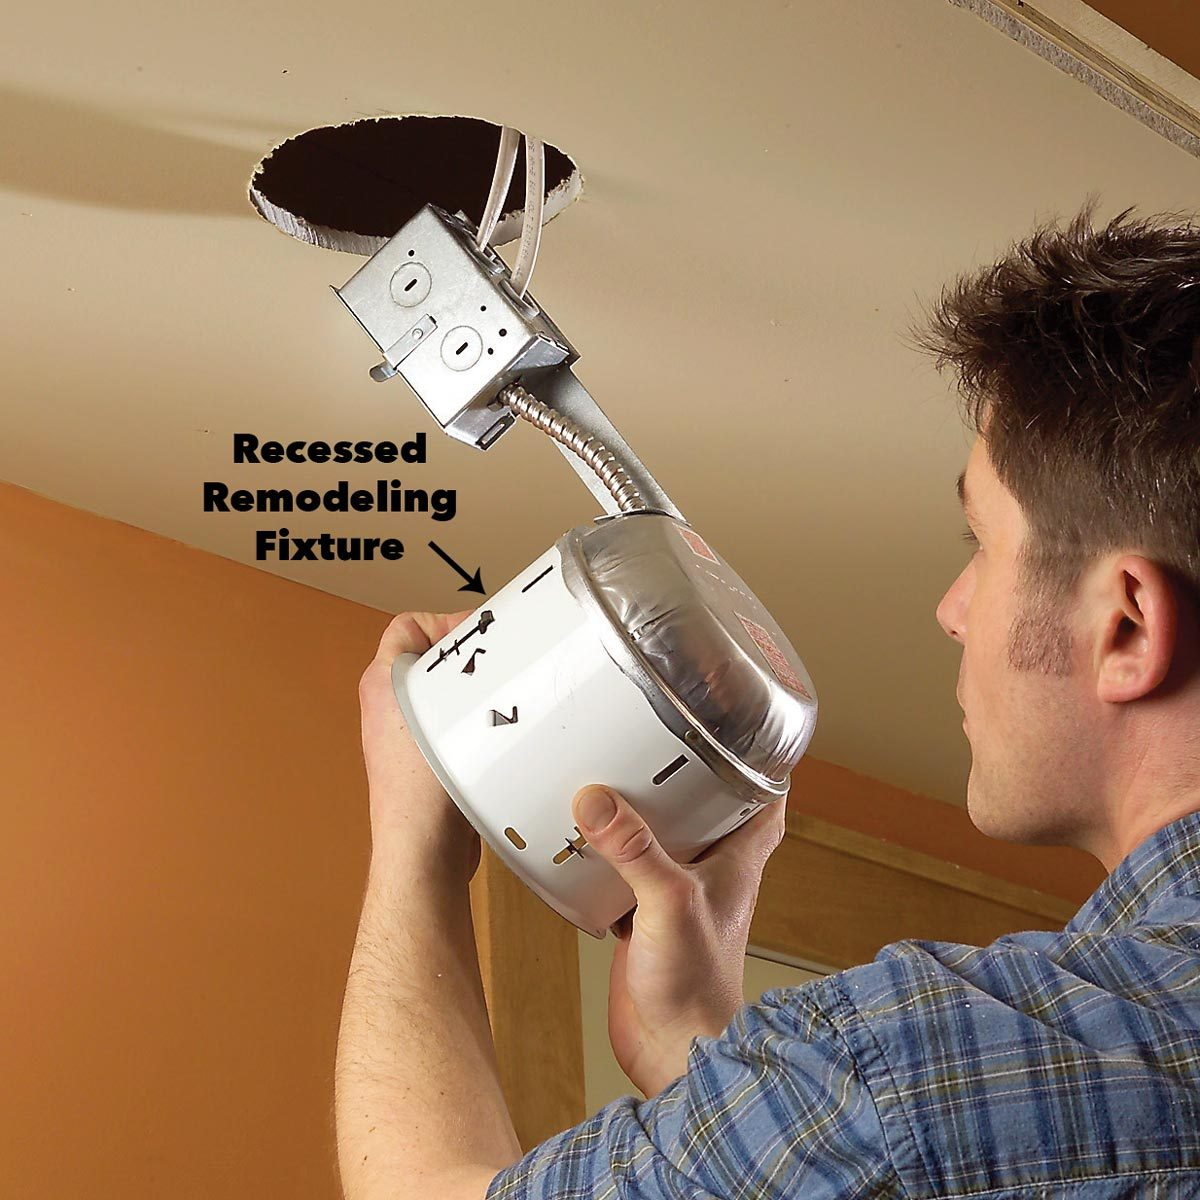 Install the recessed remodeling fixtures